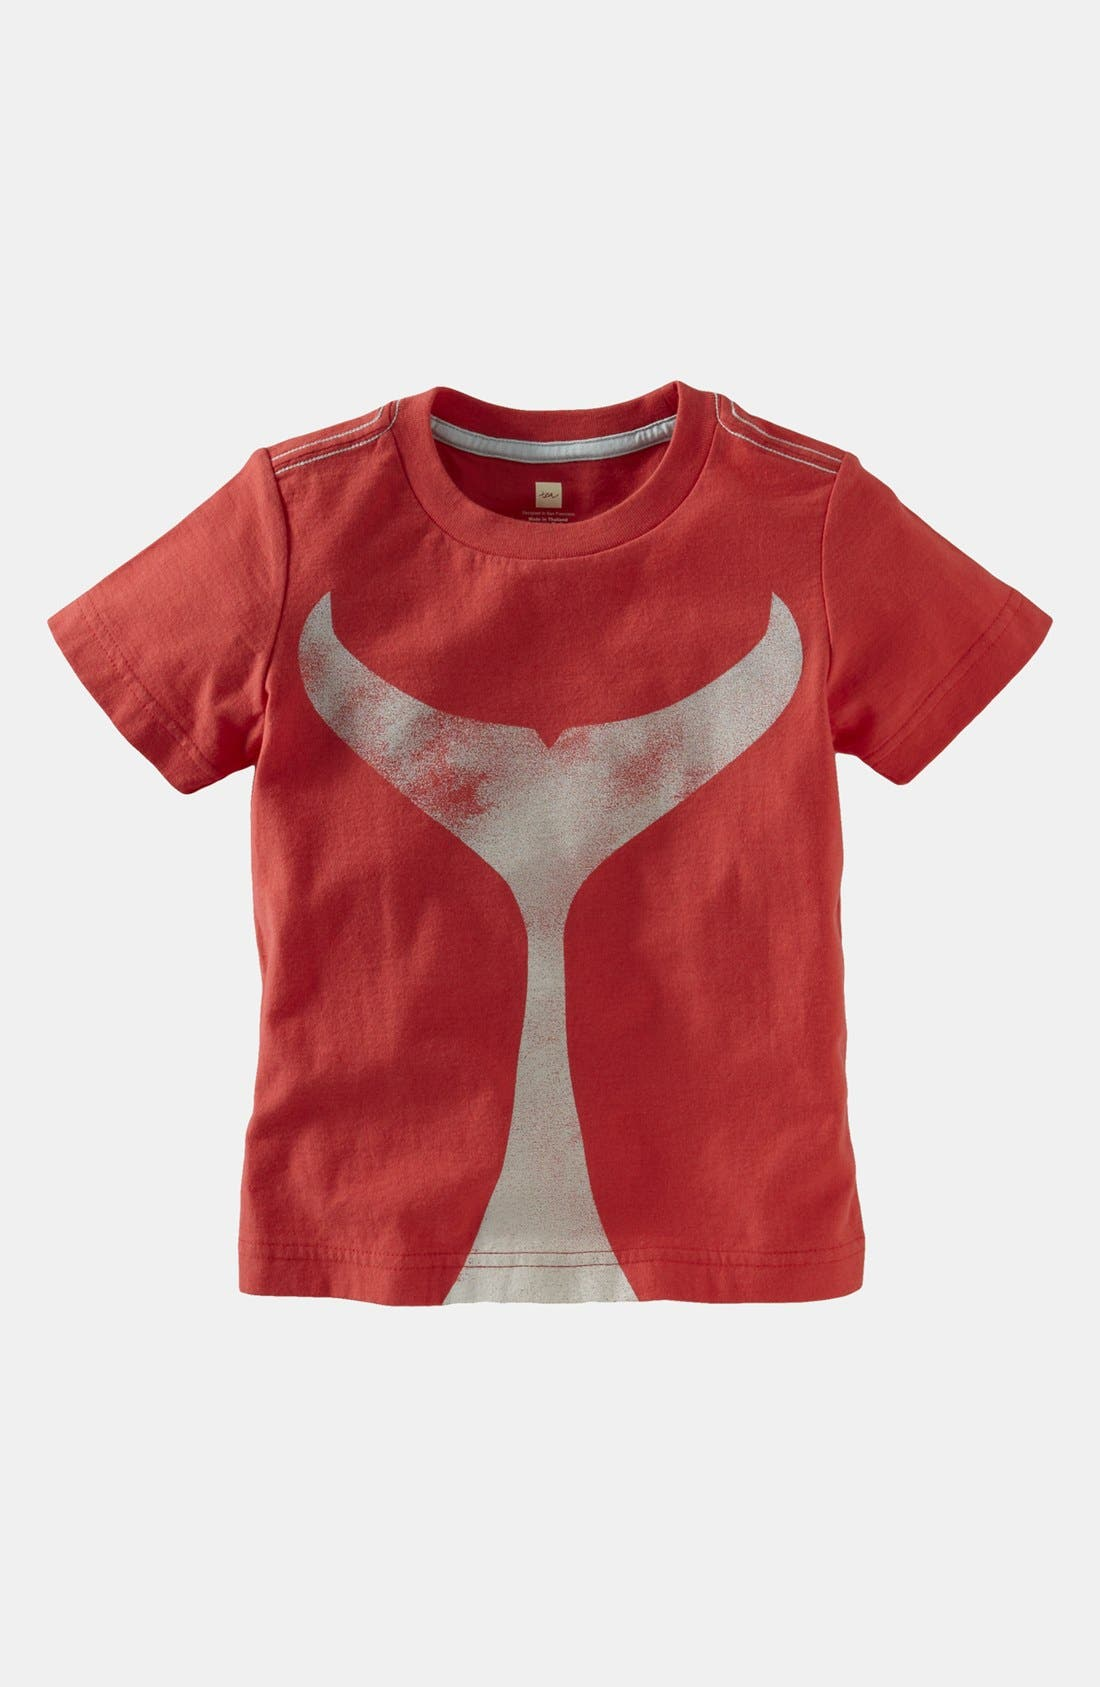 Alternate Image 1 Selected - Tea Collection 'Whale' T-Shirt (Toddler)